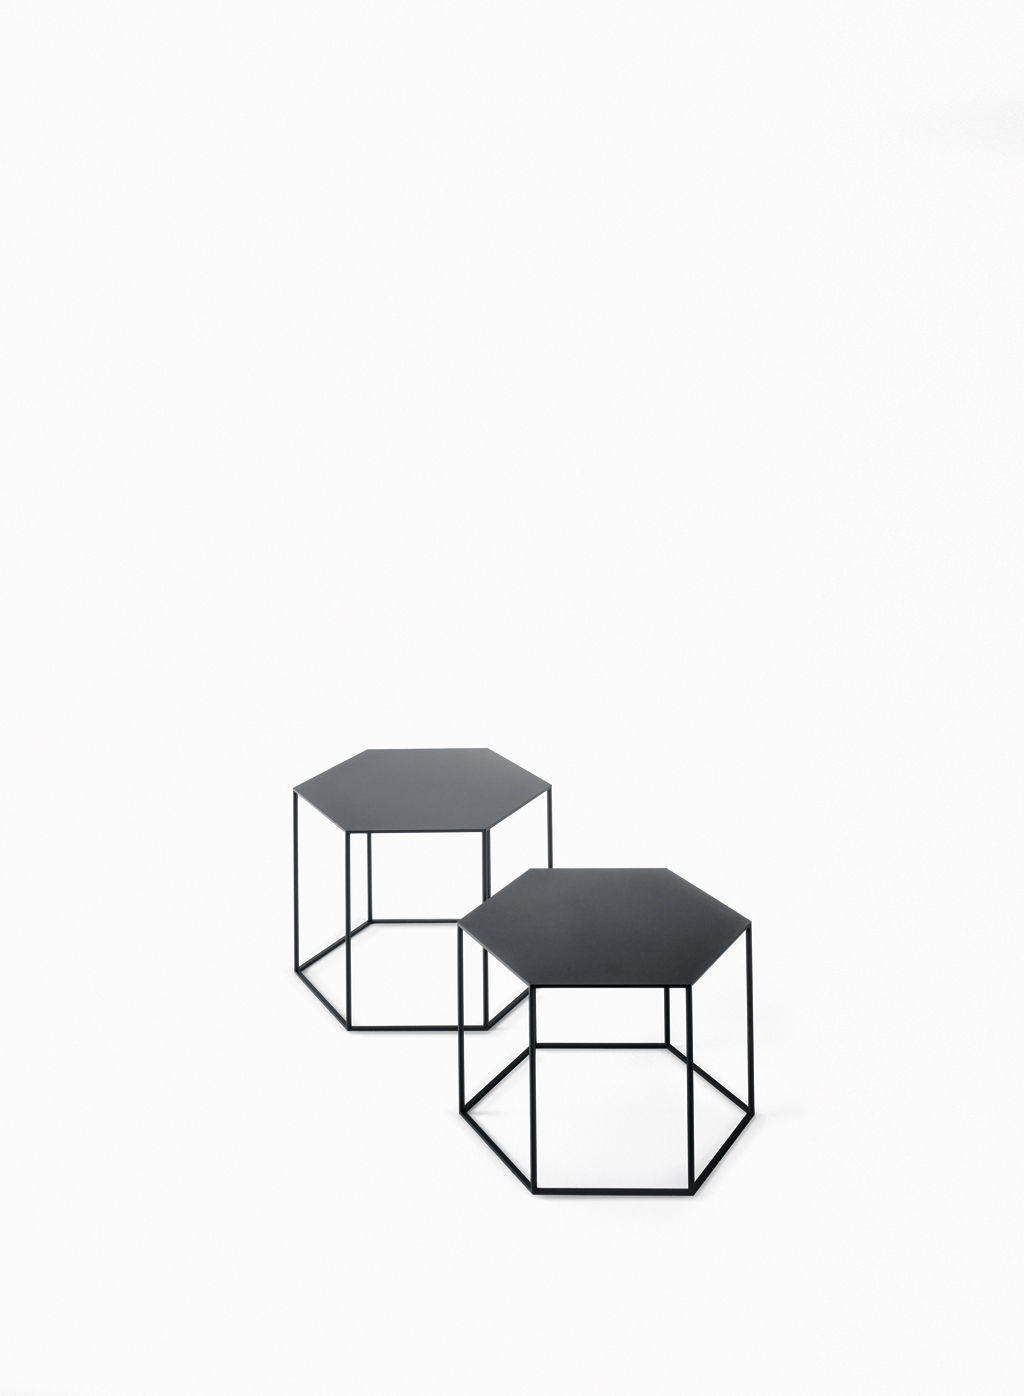 Contemporary coffee table glass steel hexagonal hexagon by contemporary coffee table glass steel hexagonal hexagon by tokujin yoshioka desalto spa geotapseo Images